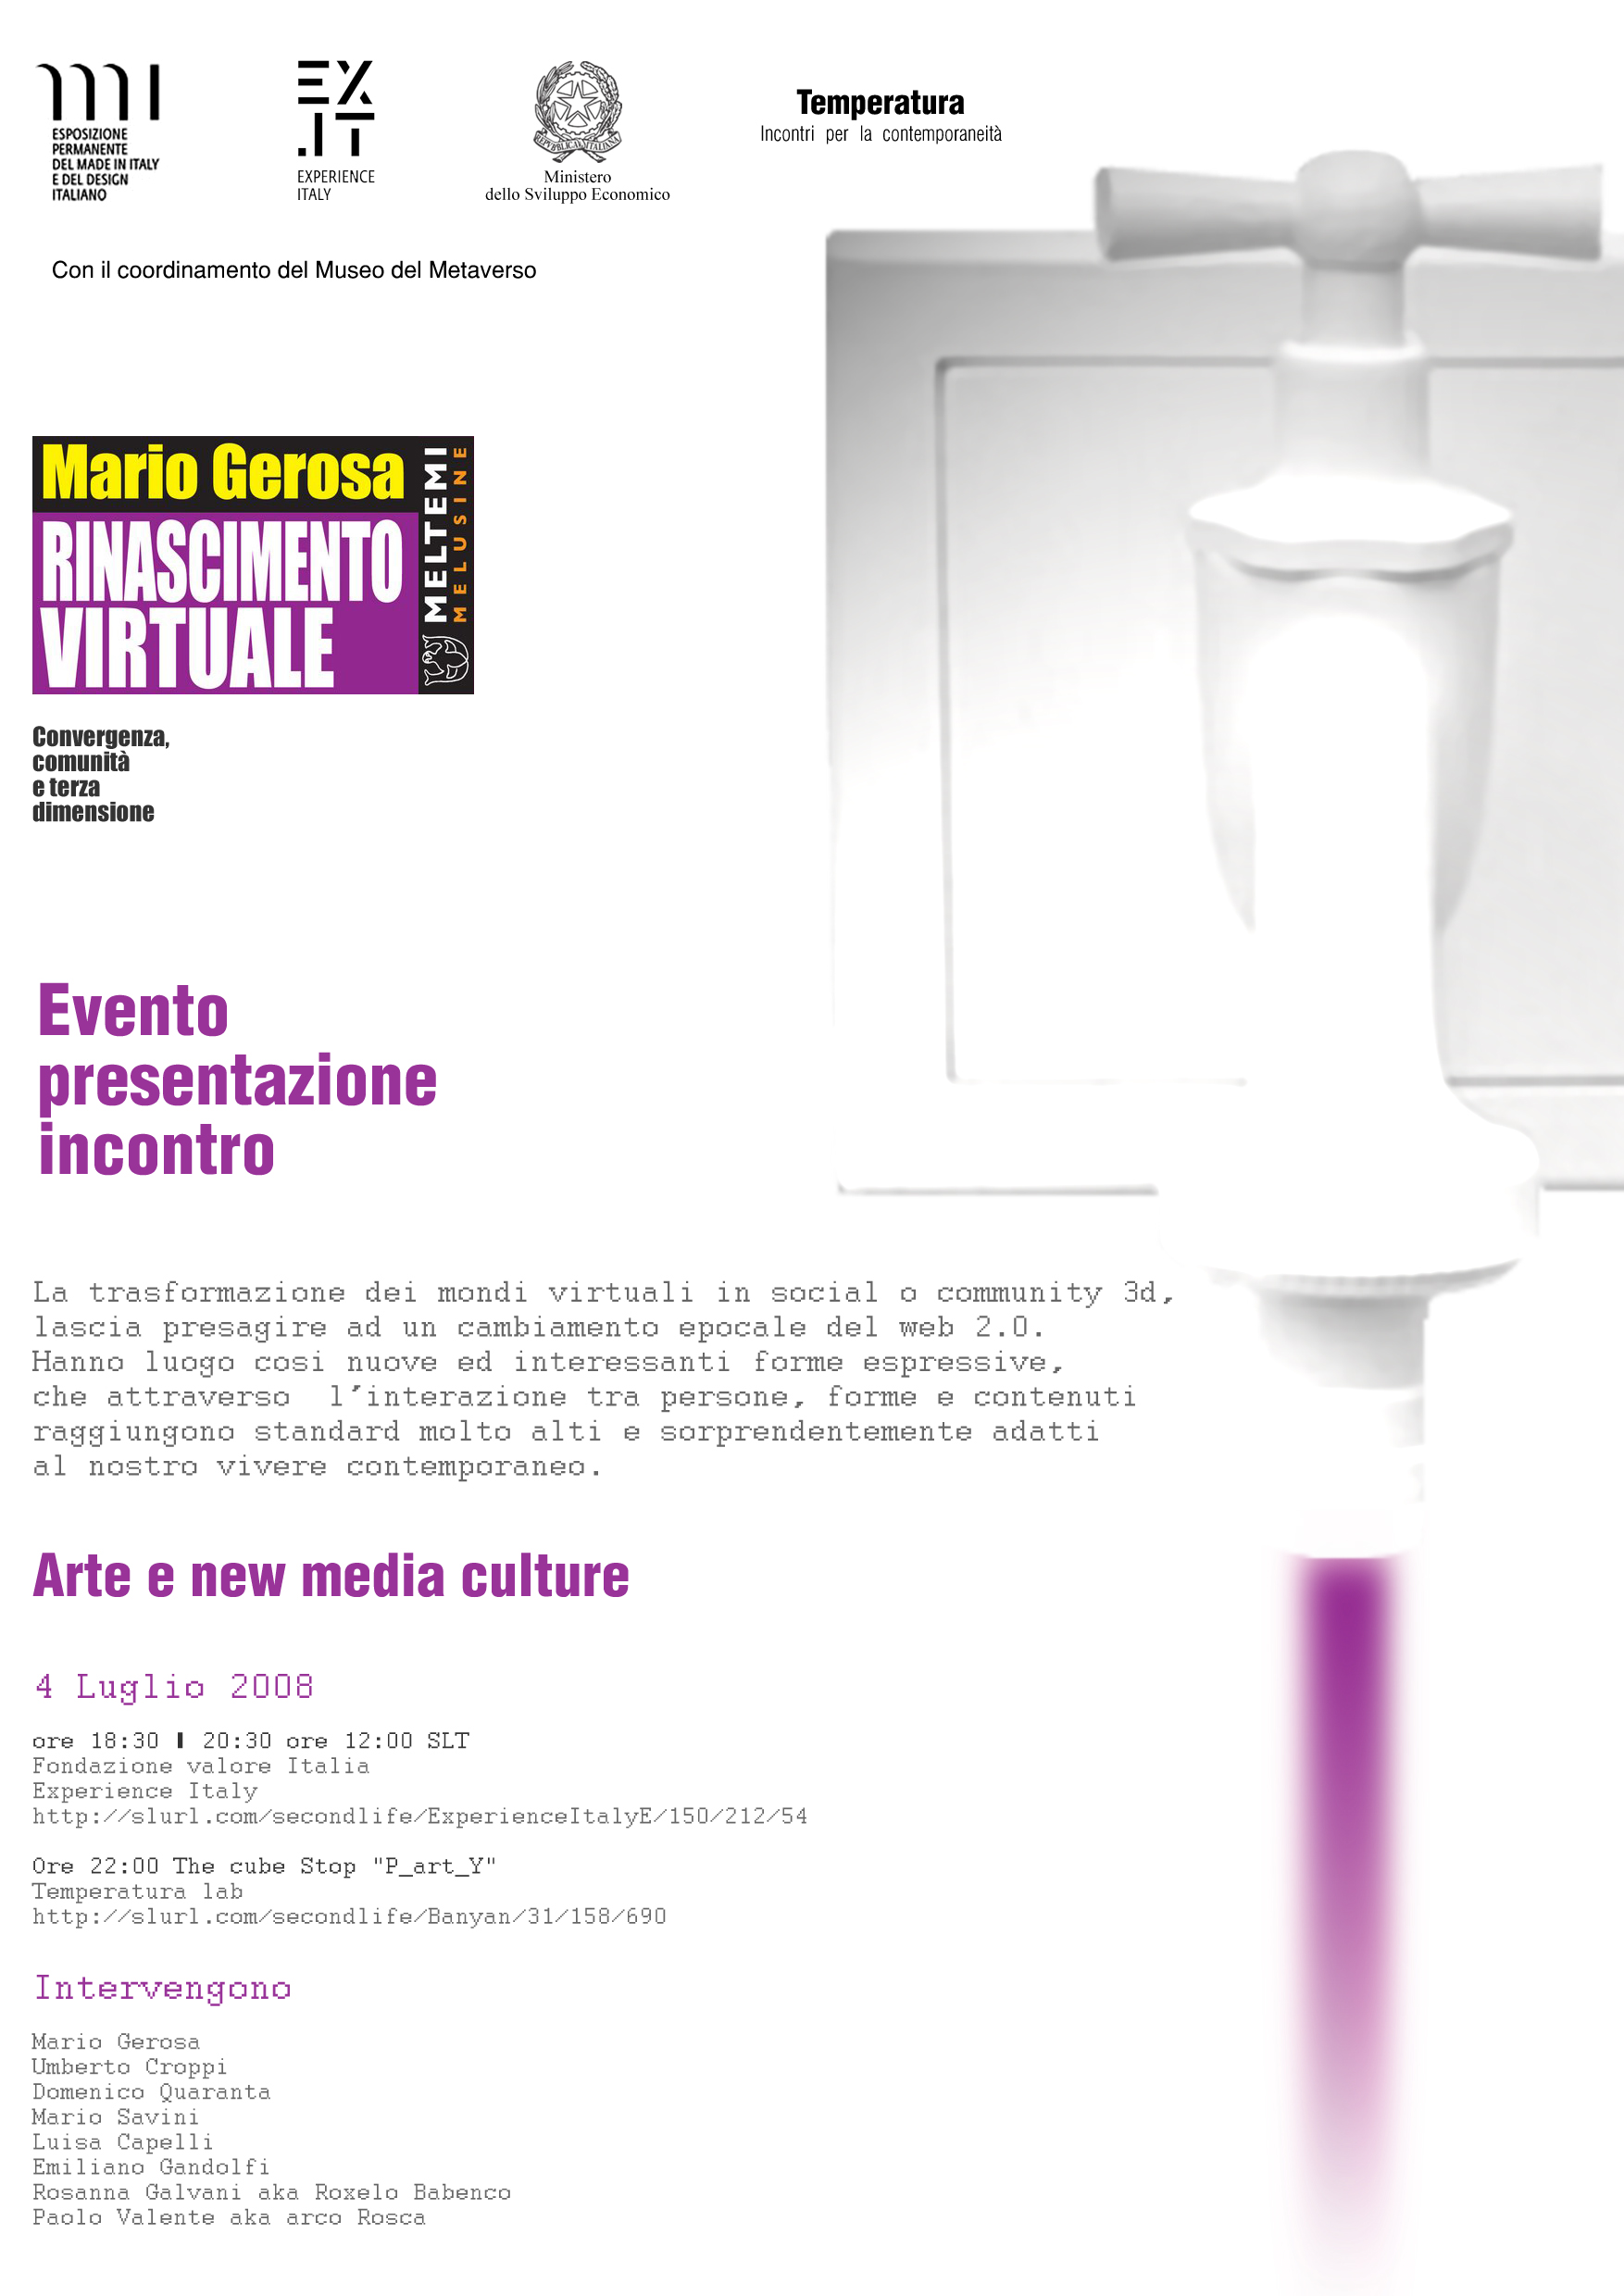 0b265969cc39 Mi-Magazine - Arte e new media culture